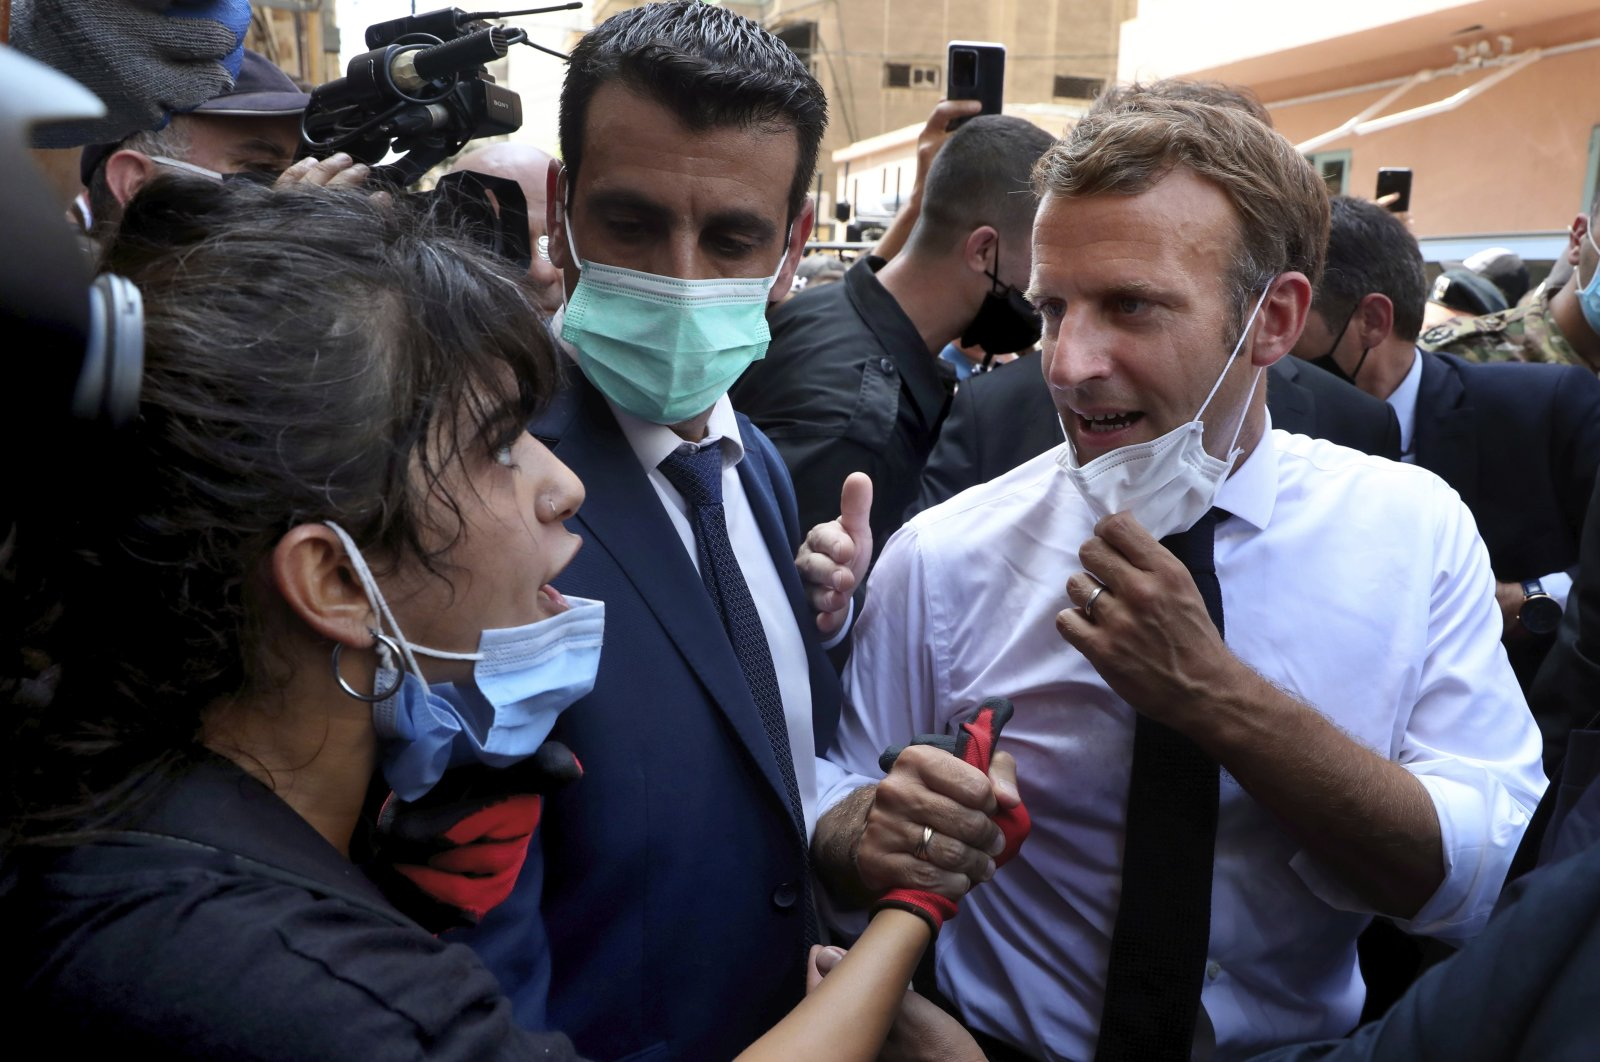 French President Emmanuel Macron (R), speaks with a woman as he visits the Gemayzeh neighborhood, which suffered extensive damage from an explosion on Tuesday that hit the seaport of Beirut, Lebanon, Aug. 6, 2020. (AP Photo)